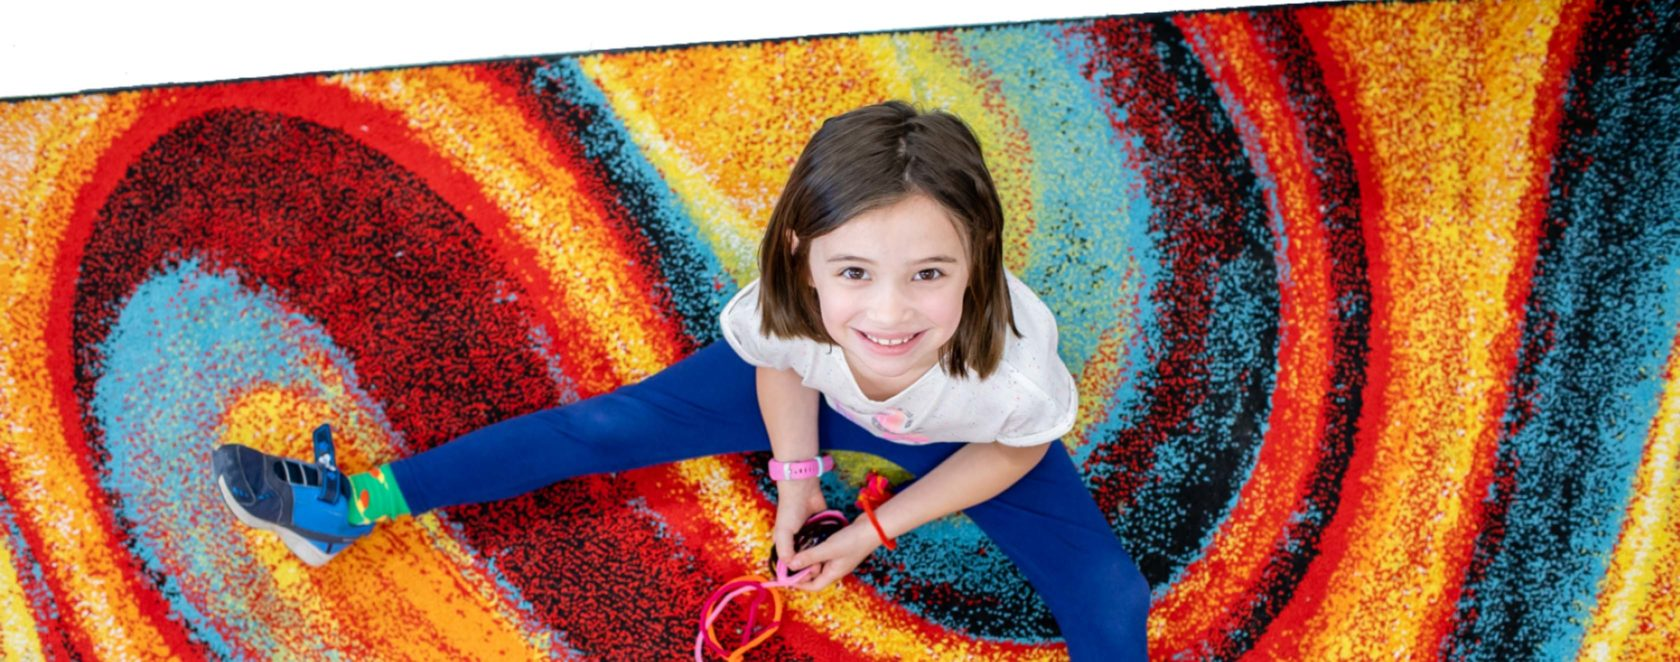 A student sitting on a colorful rug smiling and looking up at the camera.